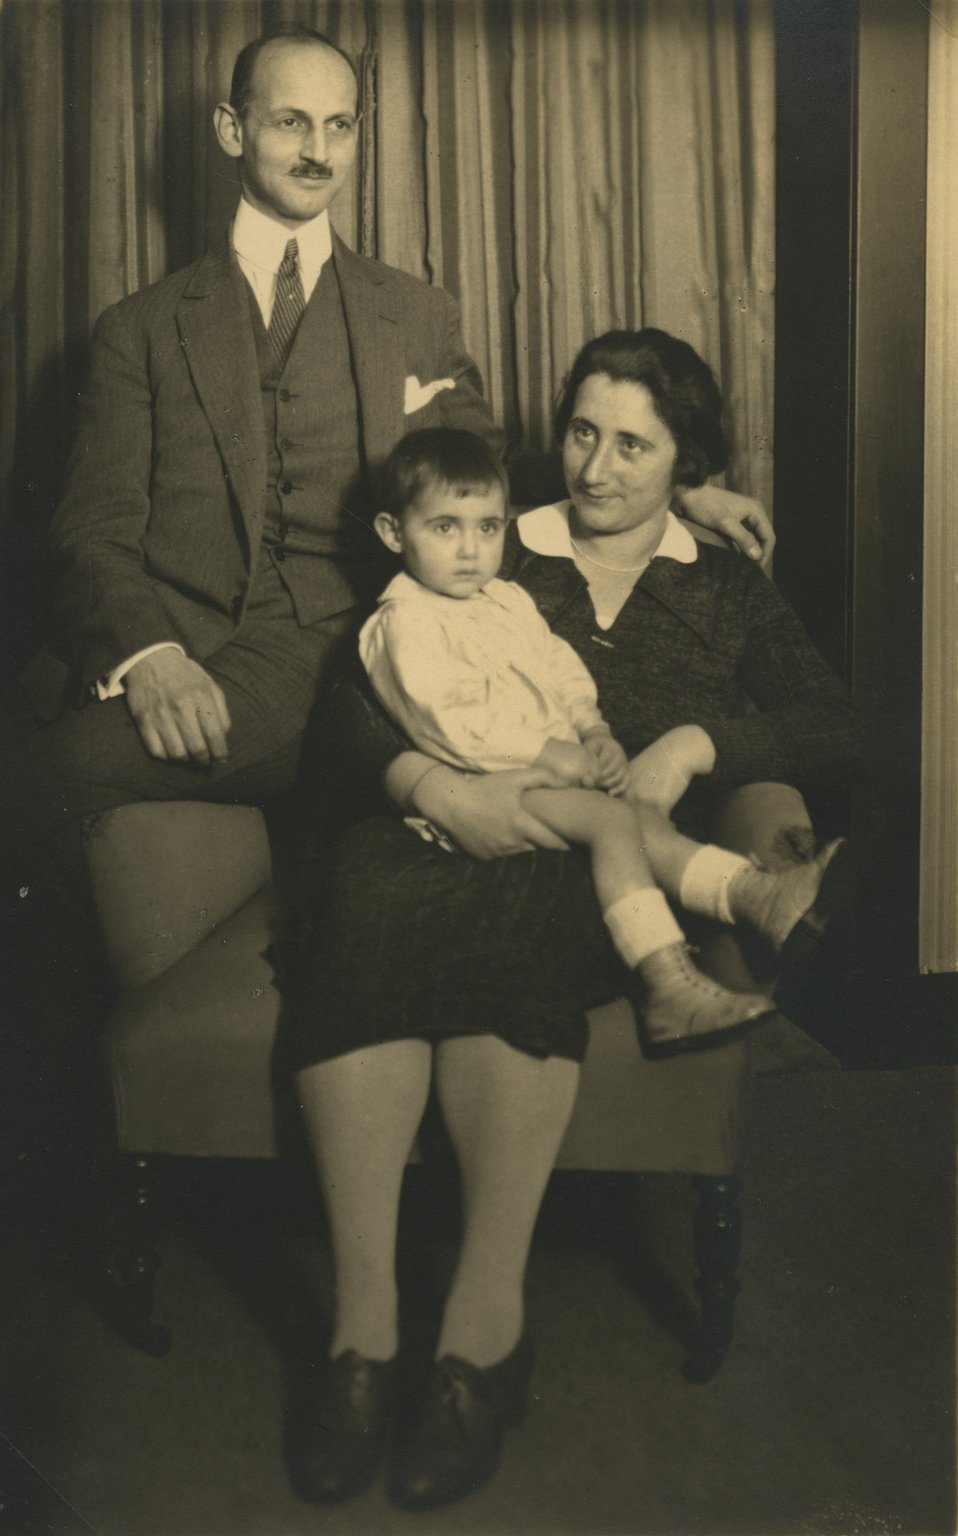 Otto, Edith, and Margot, 1928.